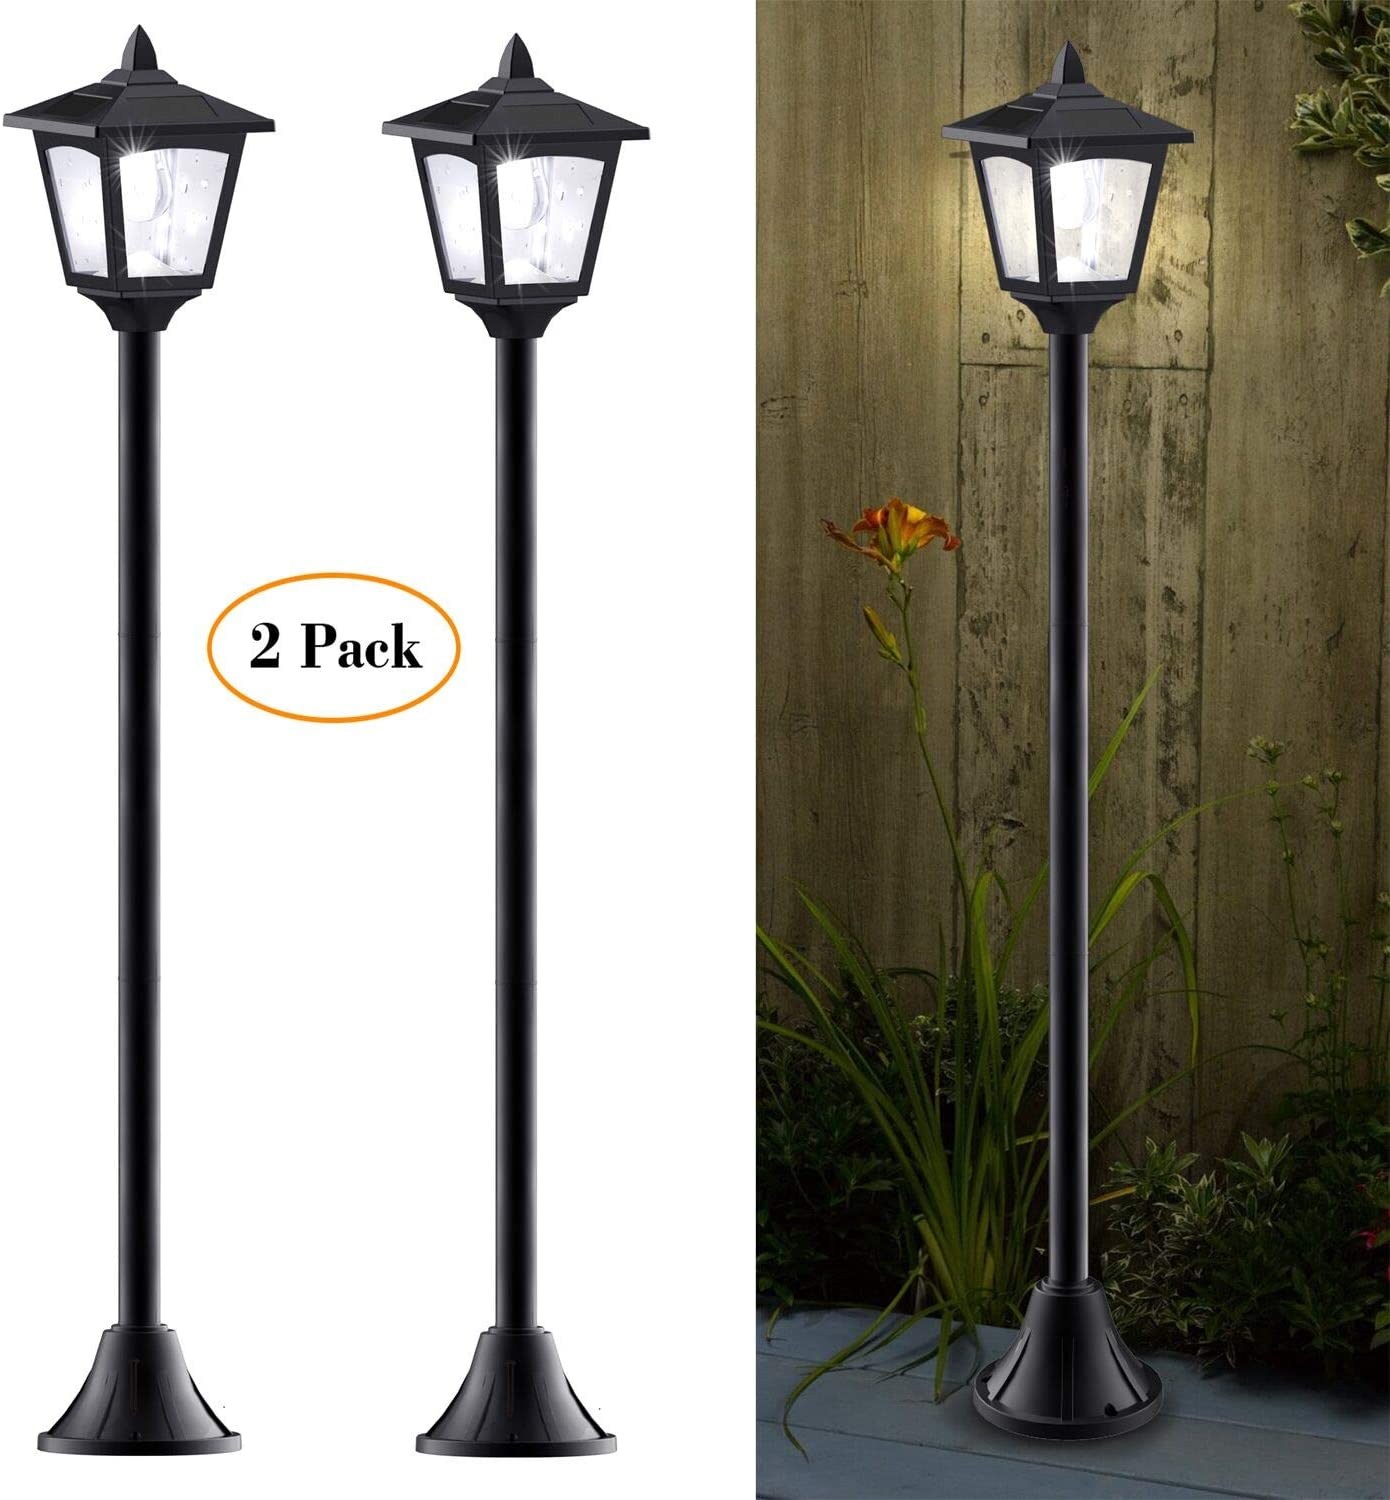 40 Inches Mini Solar Lamp Post Lights Outdoor, Solar Powered Vintage Street Lights for Lawn, Pathway, Driveway, Front/Back Door, Pack of 2